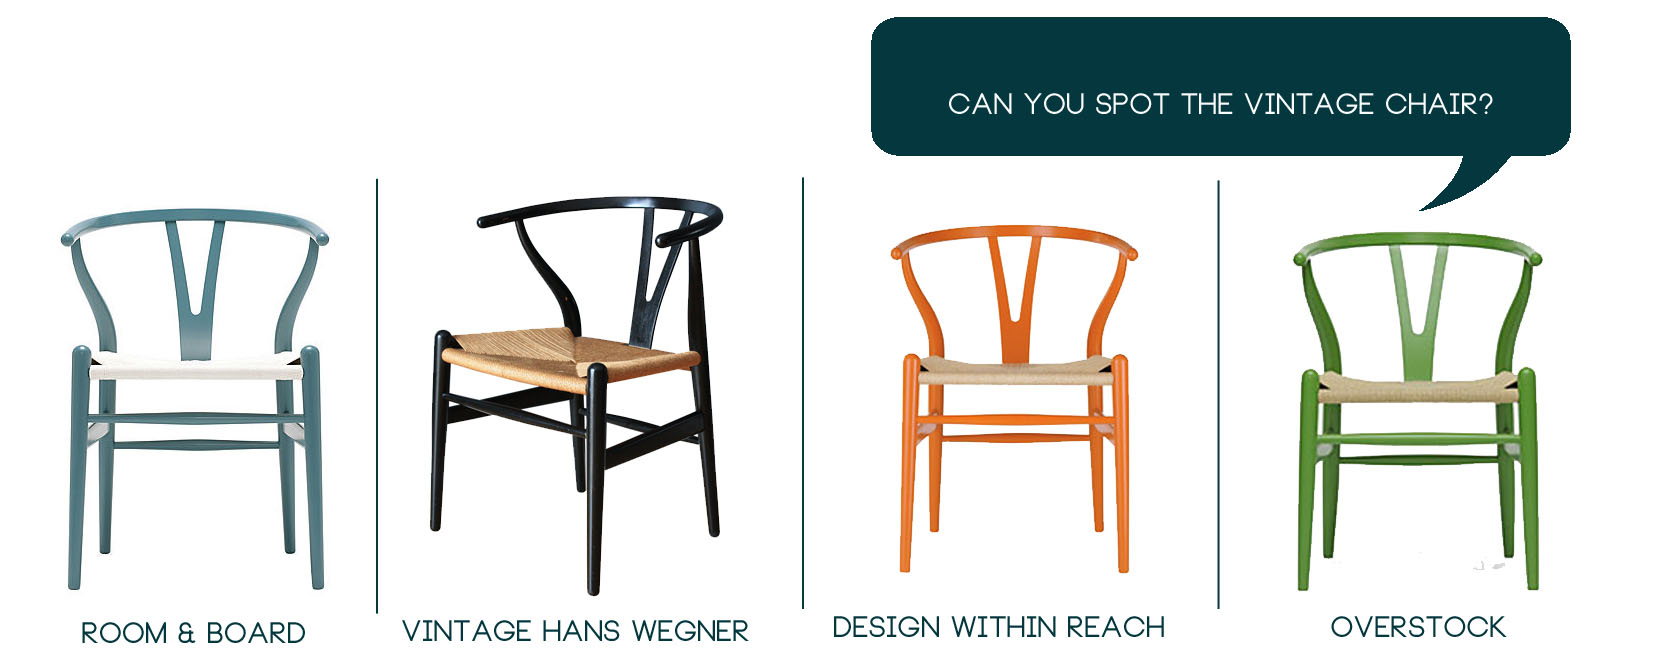 wishbone chair The Anatomy of Design